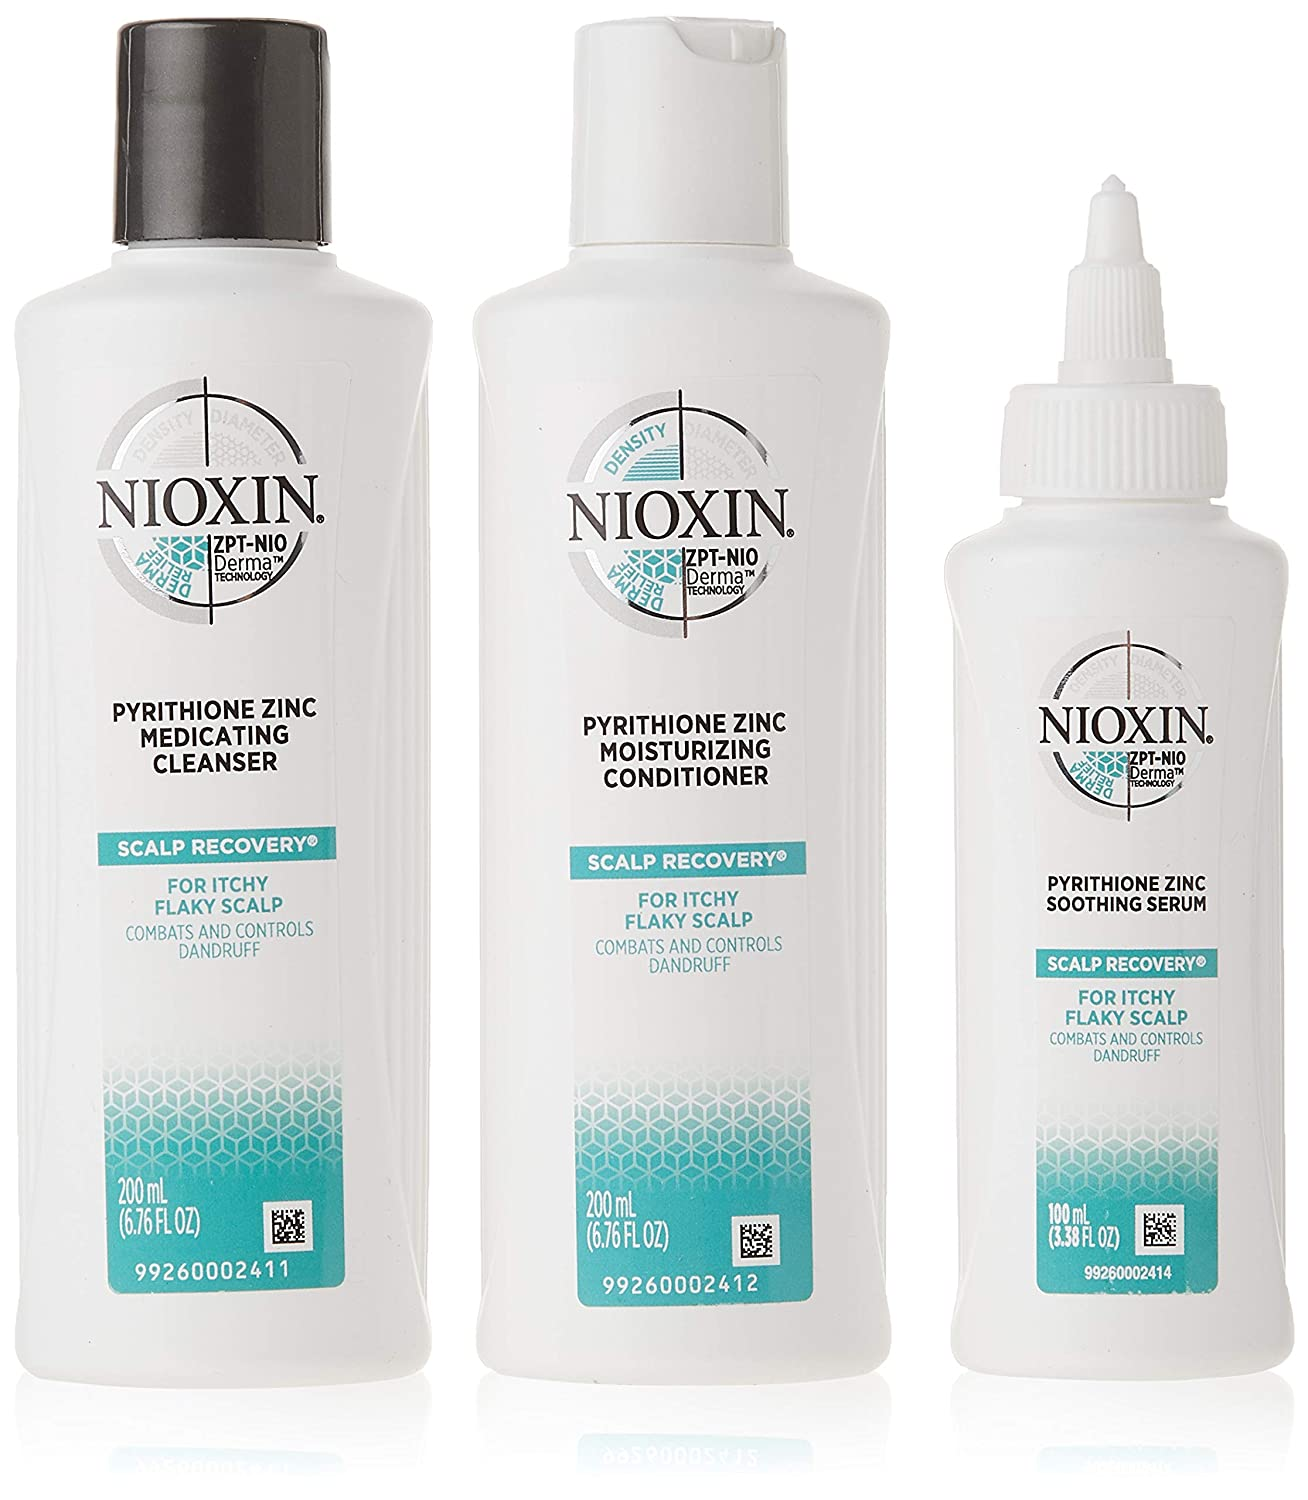 Nioxin reviews consumer report